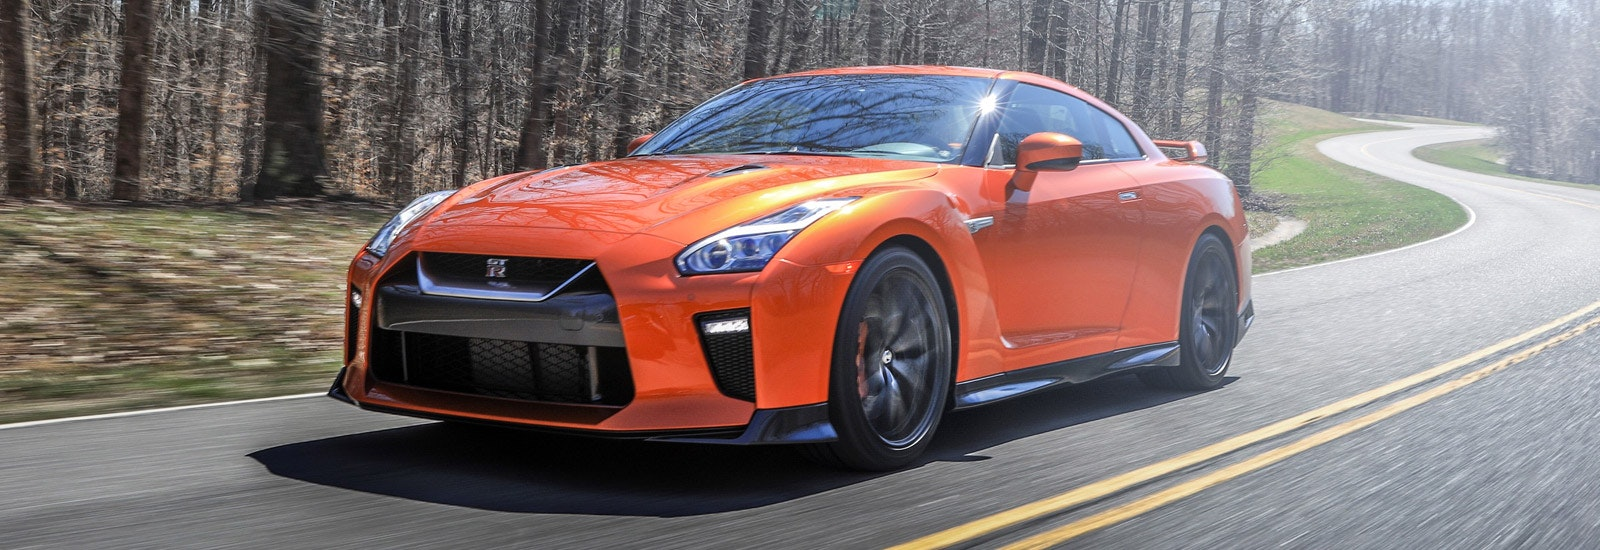 Nissan Gt R R36 Skyline Price Specs Release Date Carwow